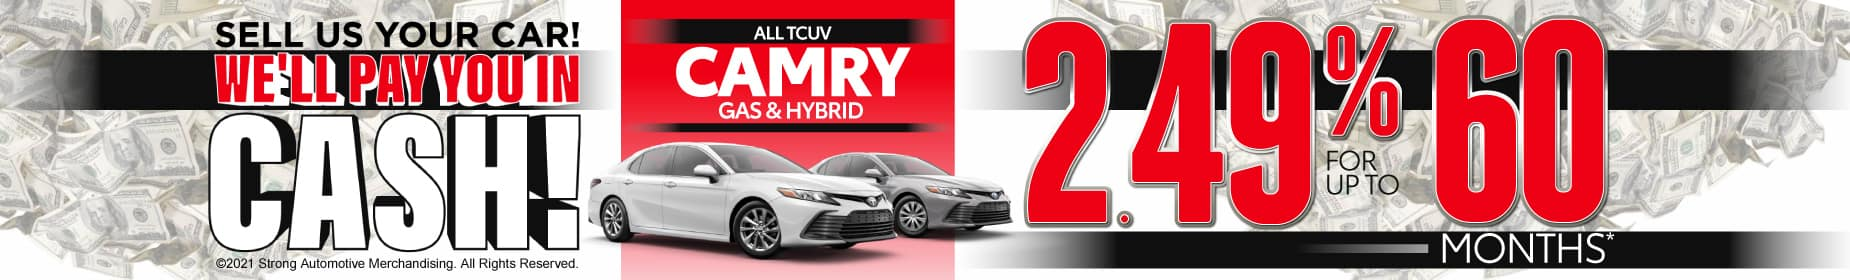 All TCUV Camry gas and hybrid 2.49% for 60 months